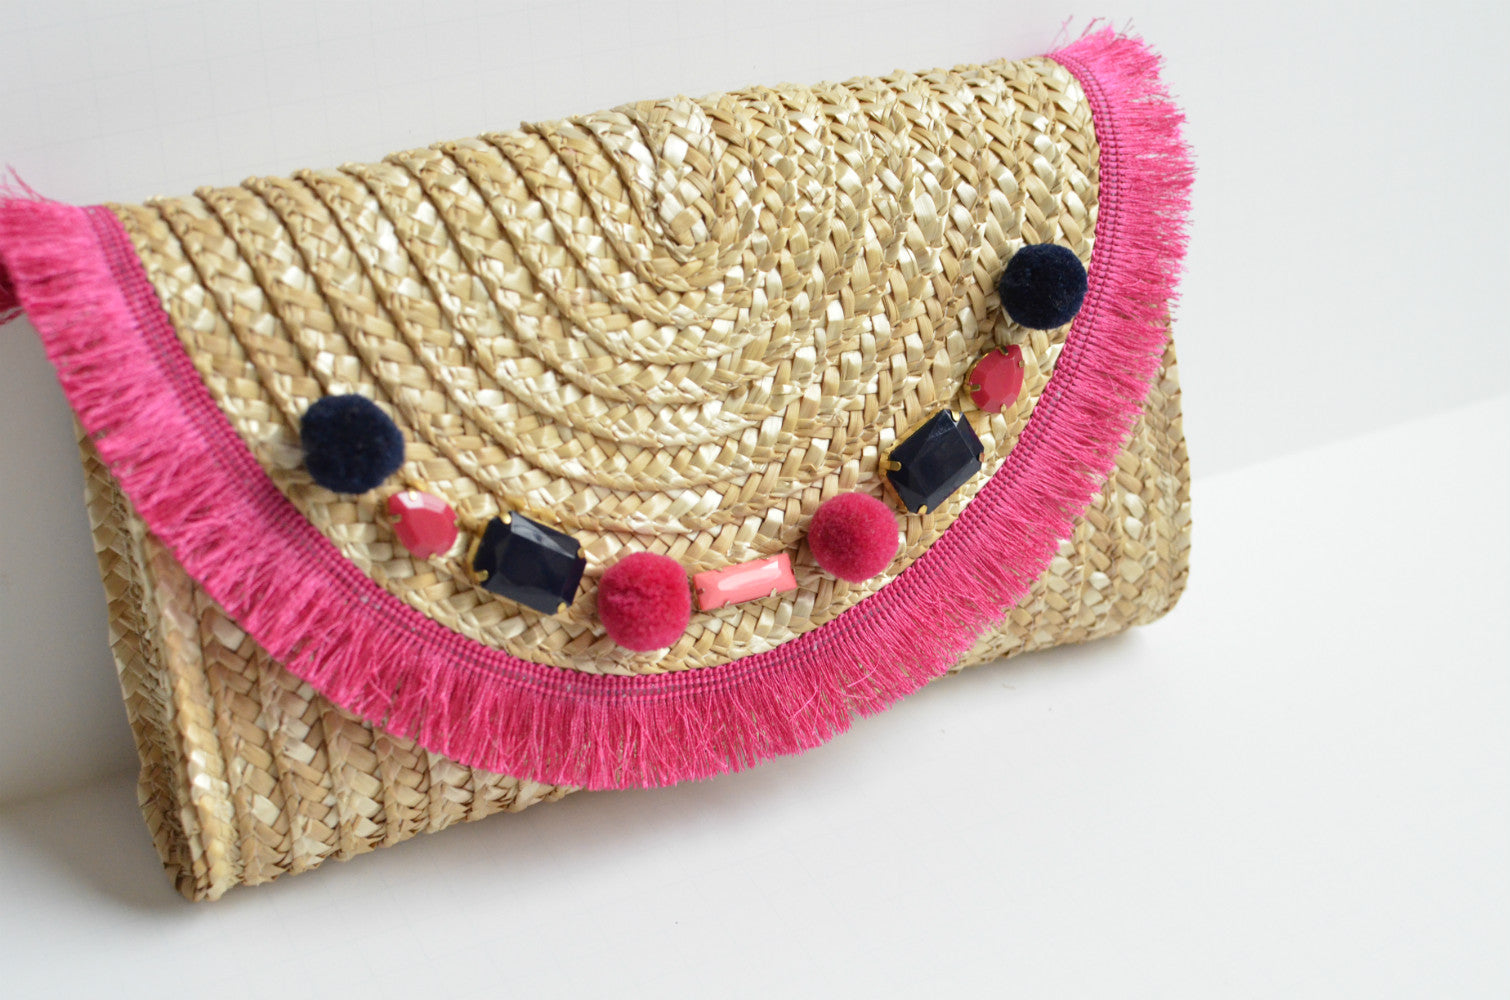 Raffia Straw Clutch in Watermelon